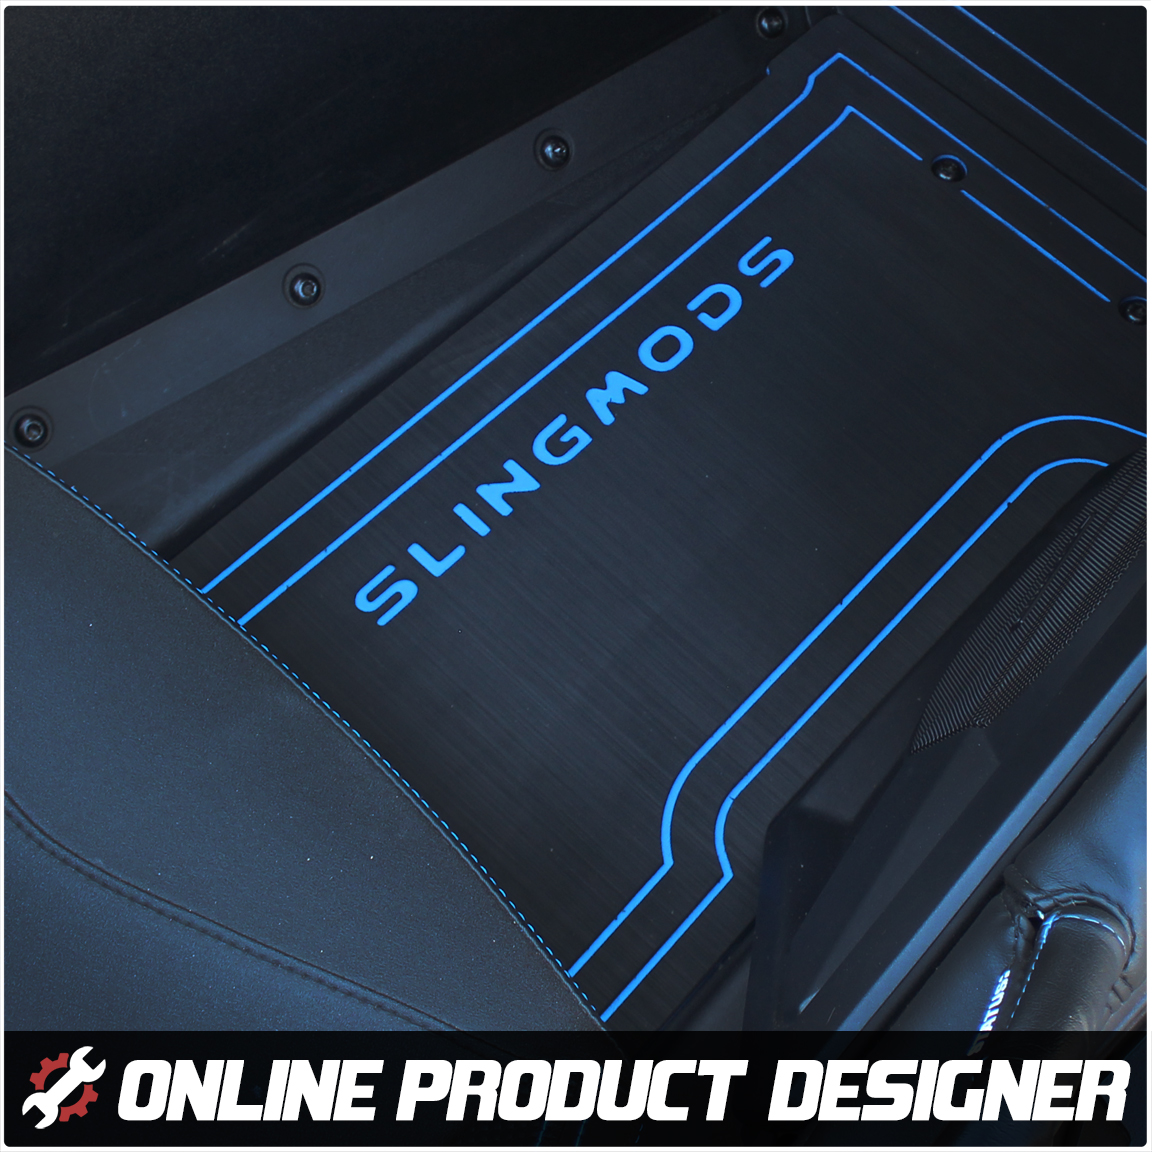 Foamskinz Floor Mats with Optional Custom Text Field for the Polaris Slingshot (Set of 2)